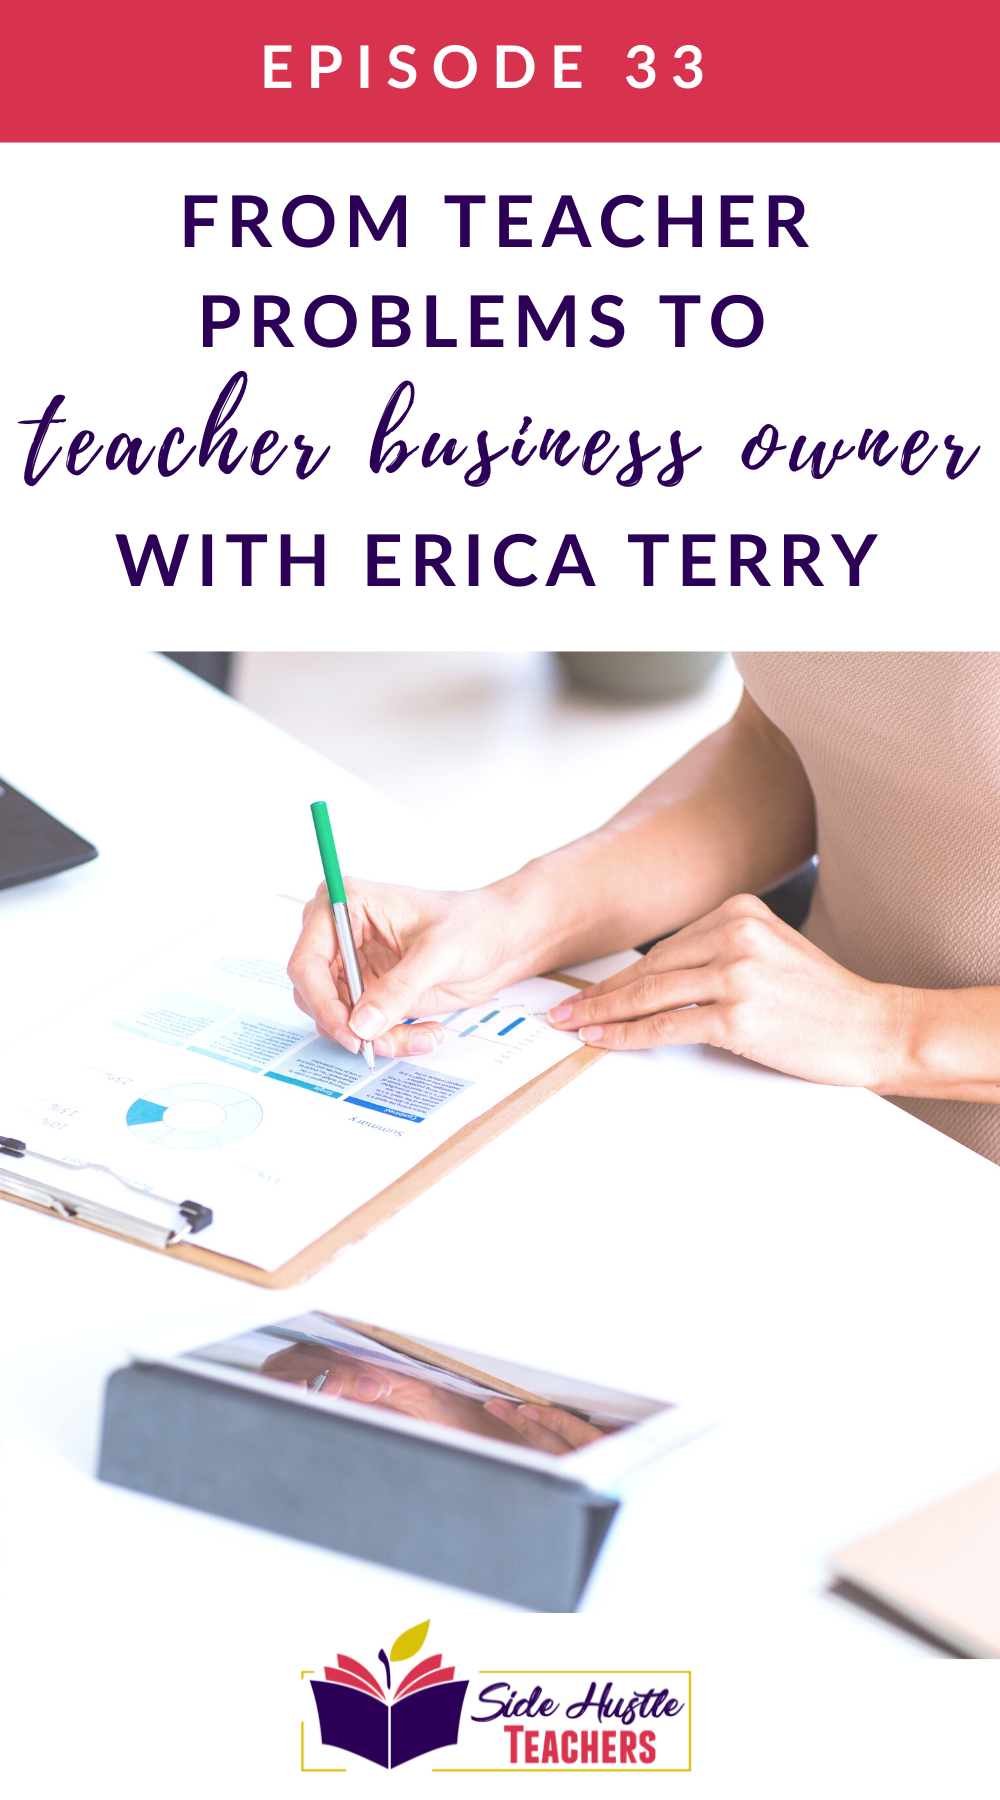 From Teacher Problems to Teacher Business Owner with Erica Terry